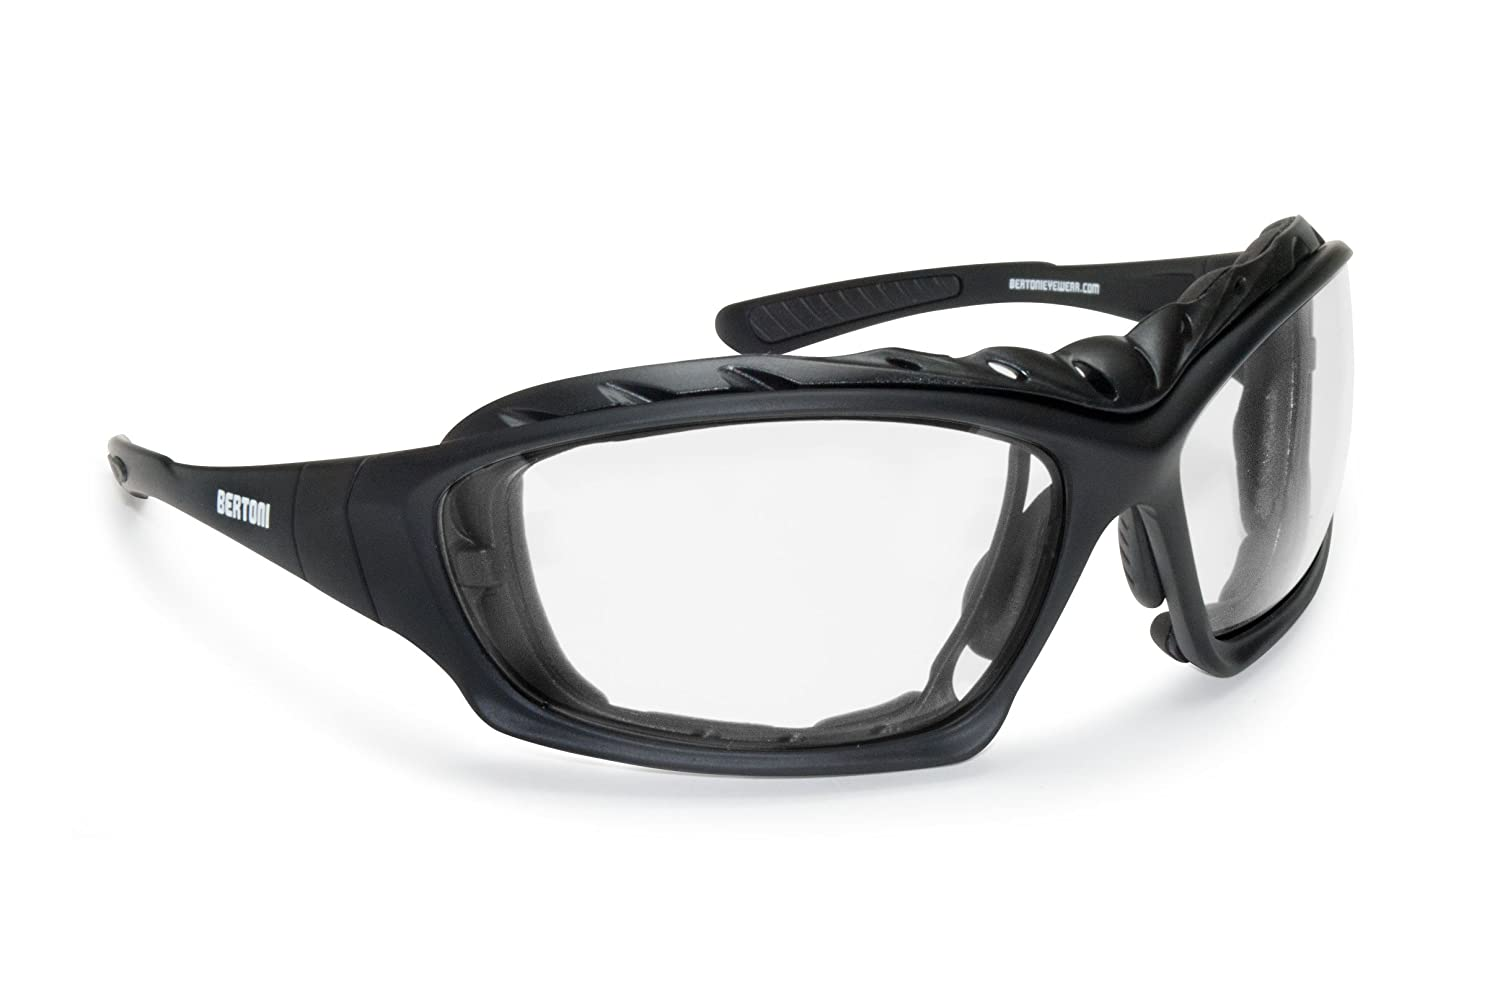 Bertoni Photochromic Extreme Sports Sunglasses - Motorcycle Prescription Goggles- Antifog lens - Italy F366A Bertoni iWear